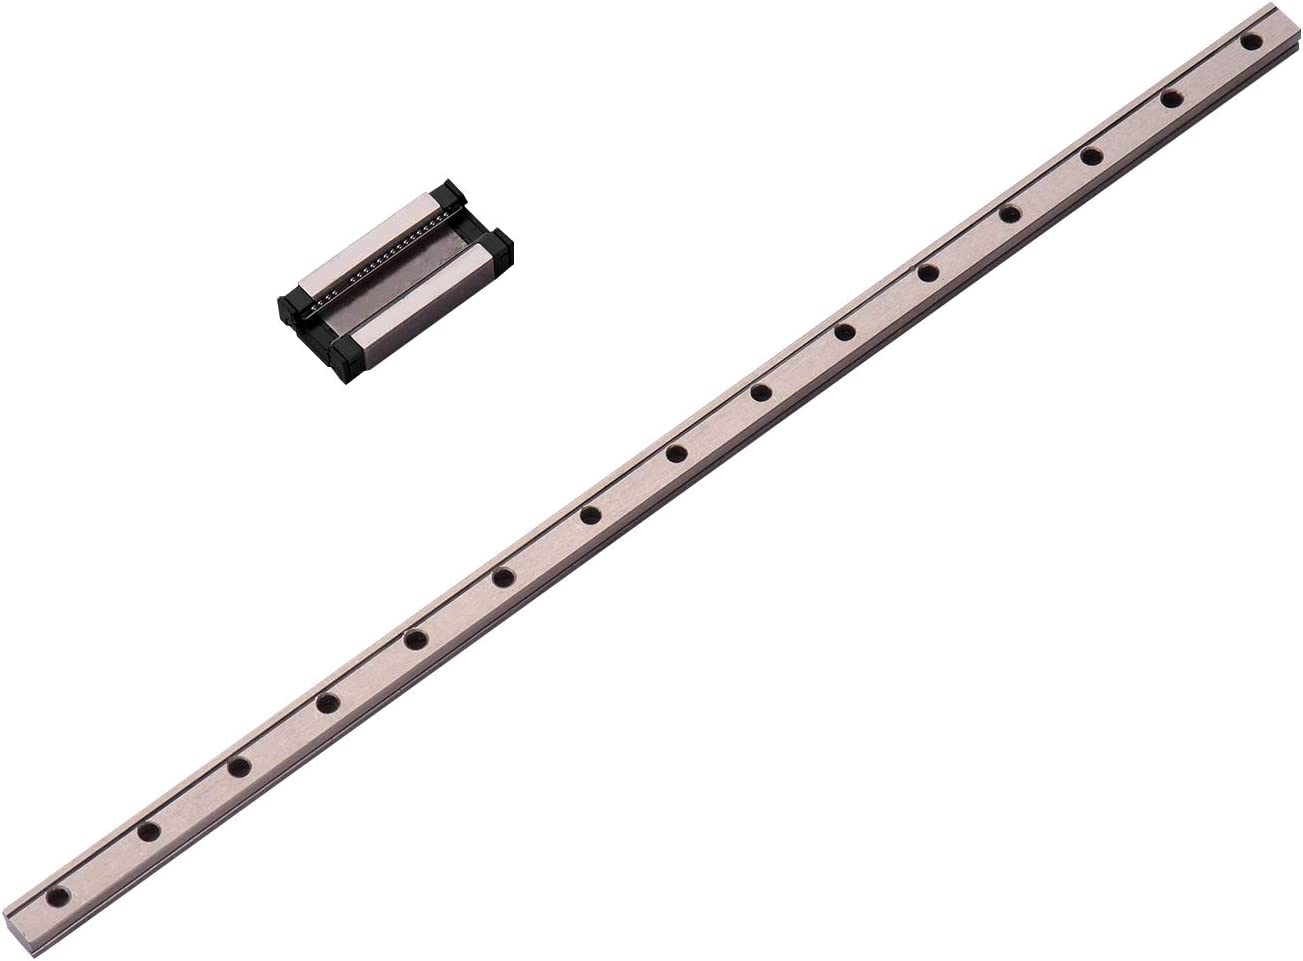 Aibecy MGN9H 300mm Linear Rail Guideway Rail with Block for 3D Printer CNC Machine